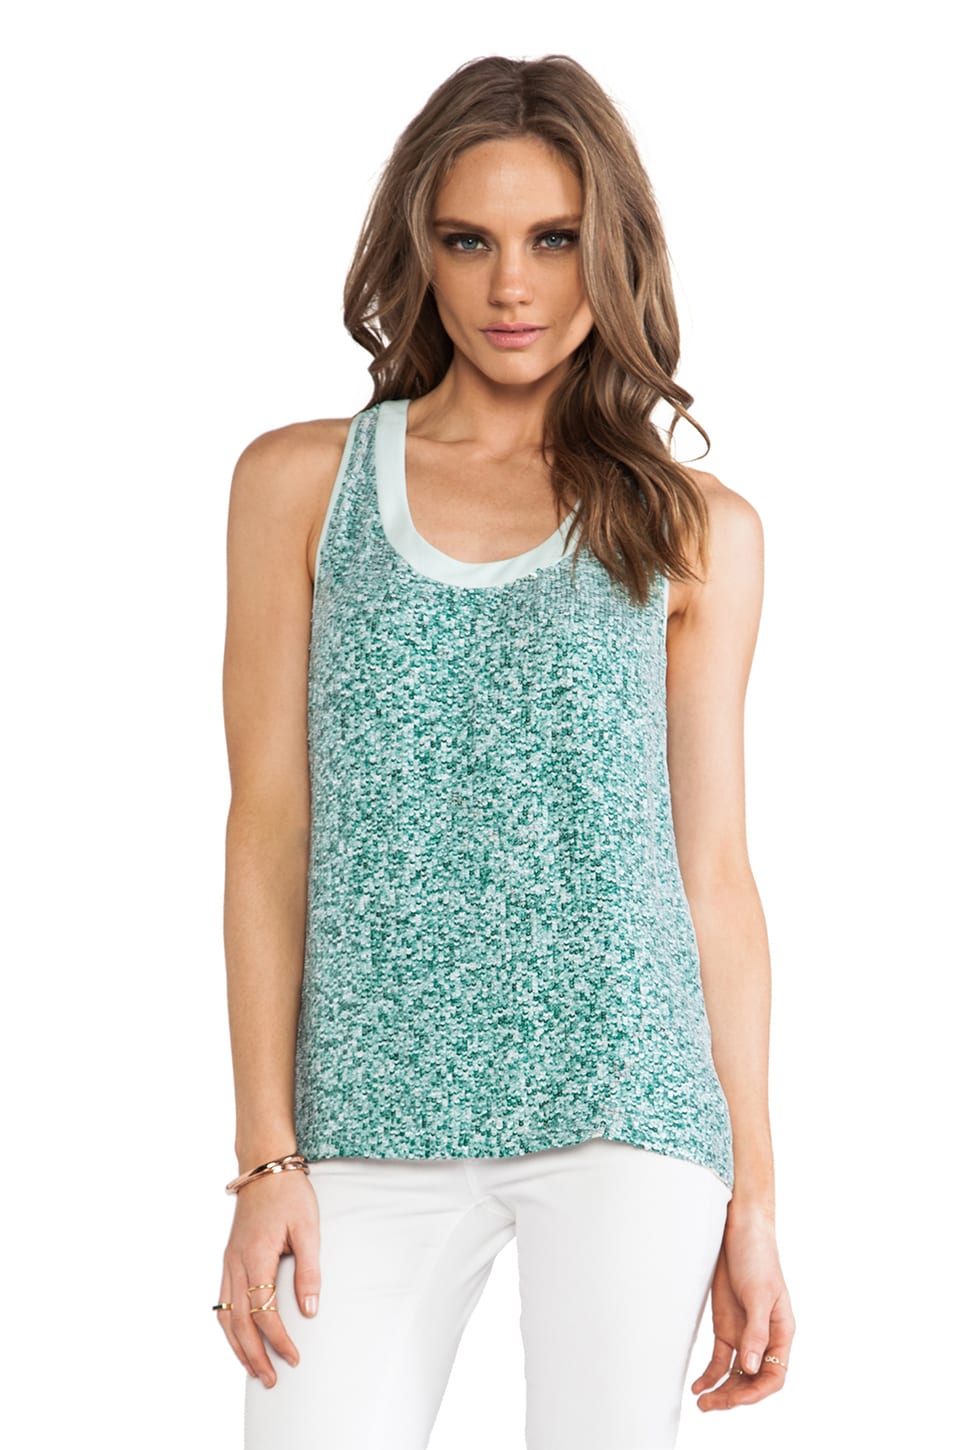 Diane von Furstenberg Emilia Marble Sequins Top in Green